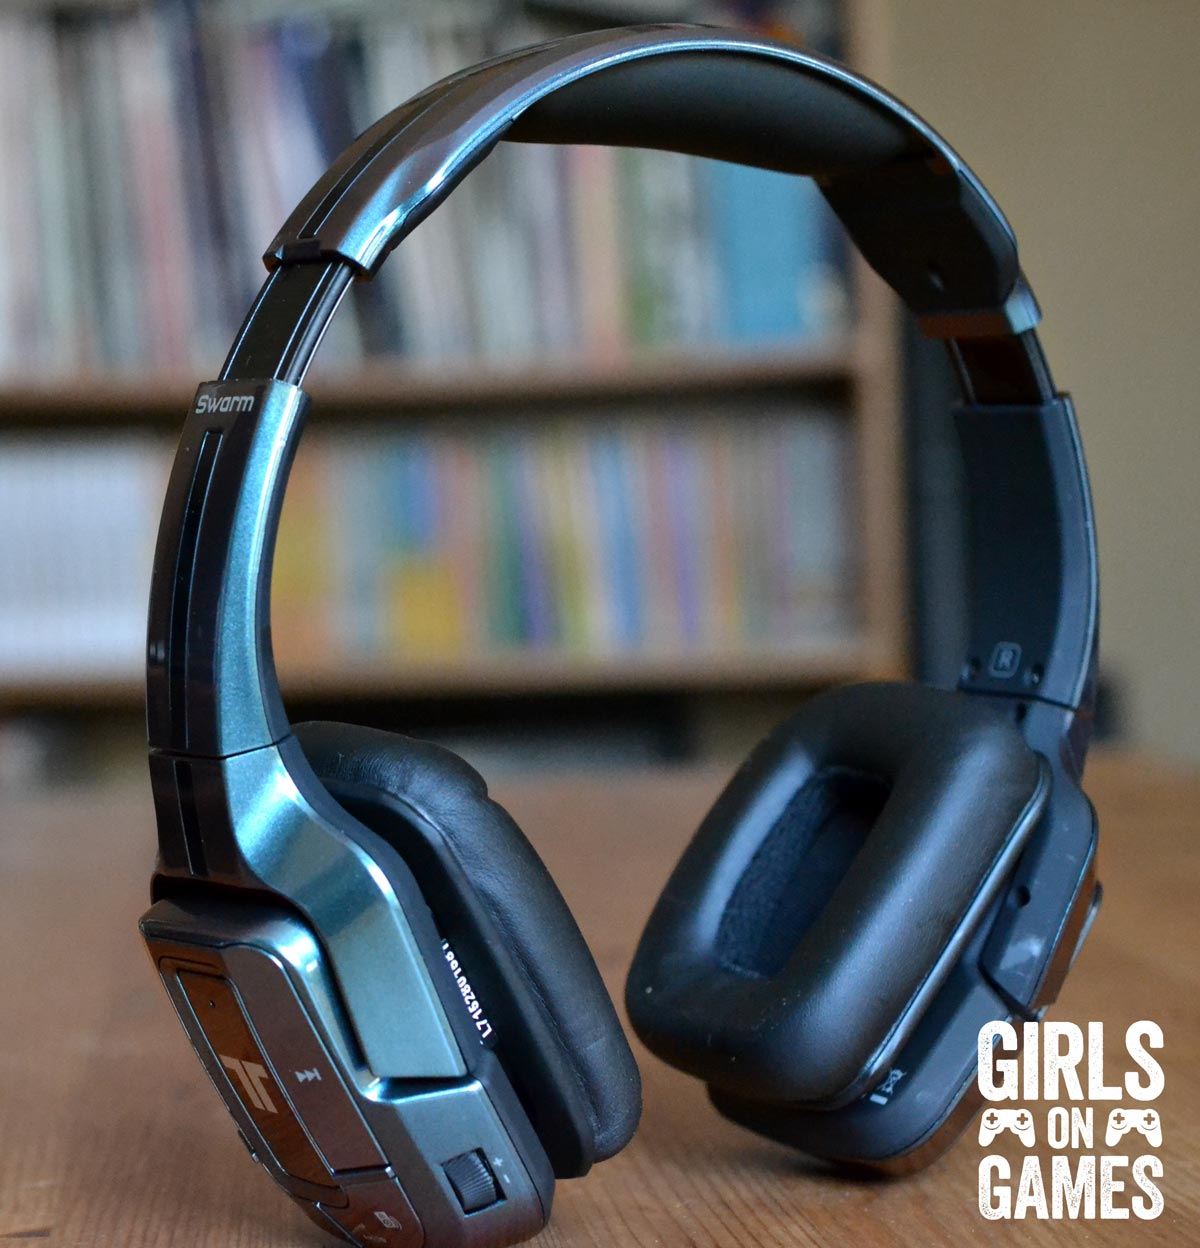 Tritton Swarm Mobile Headset. Photo © Catherine Smith-Desbiens / Girls on Games